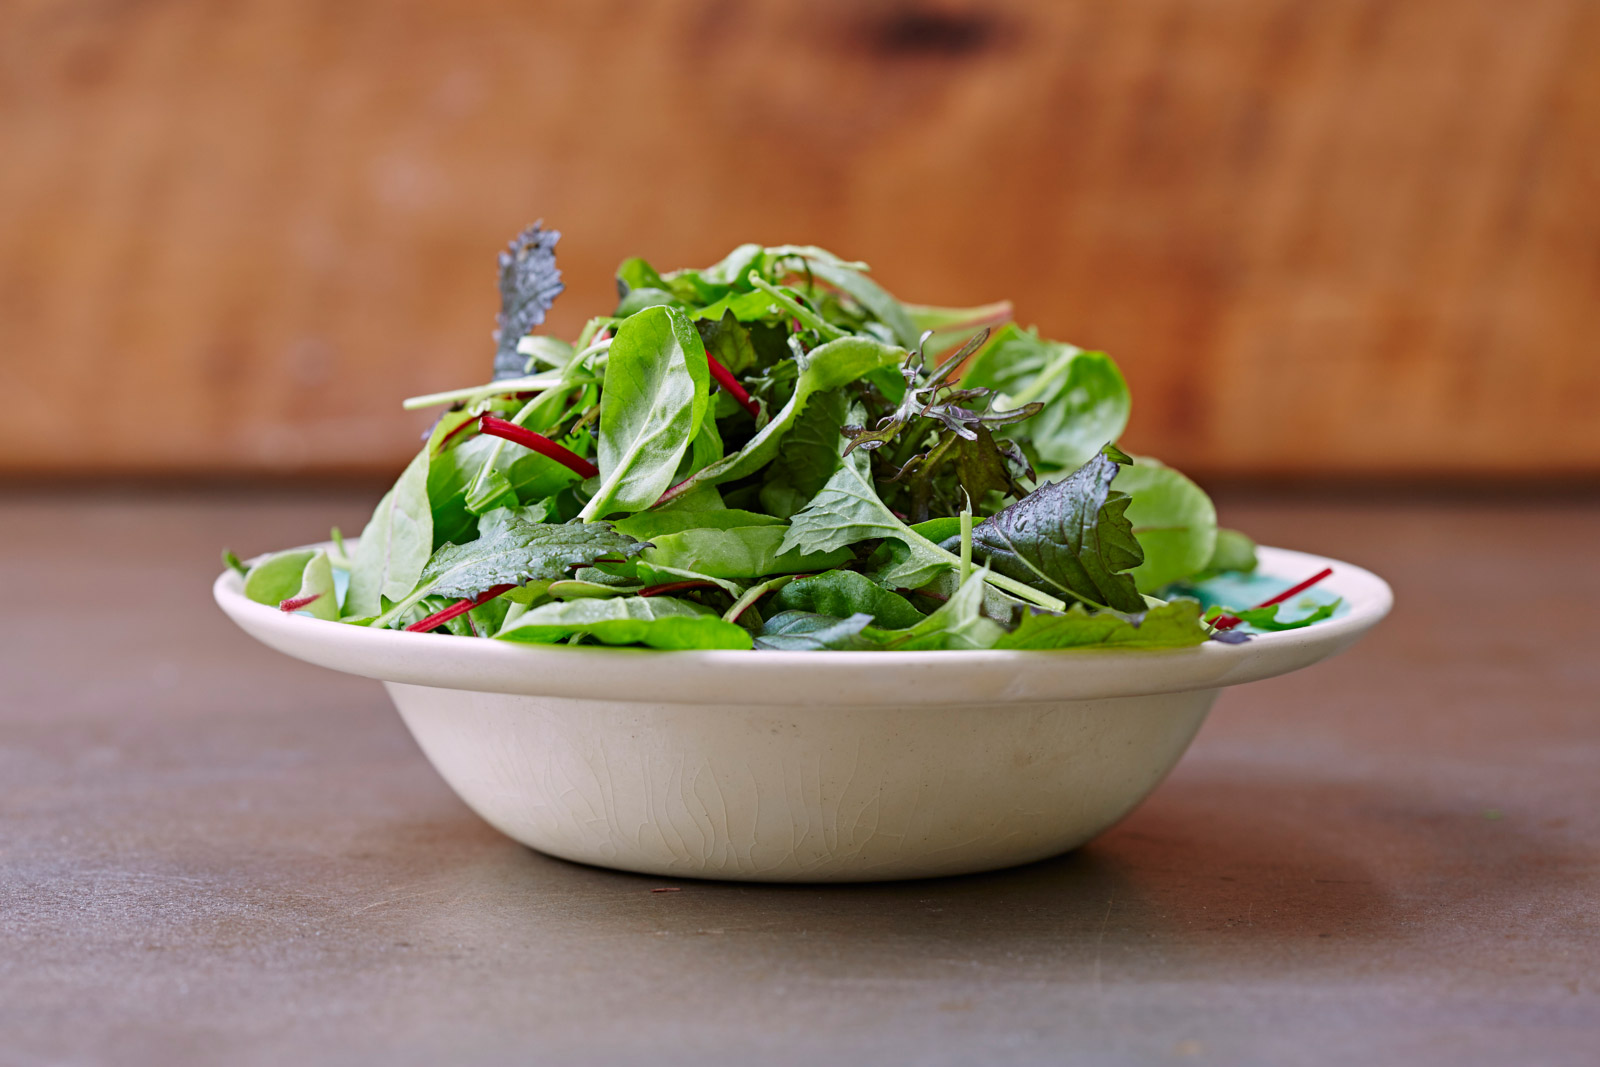 easy to remember food portion guide for salad which is one large bowl